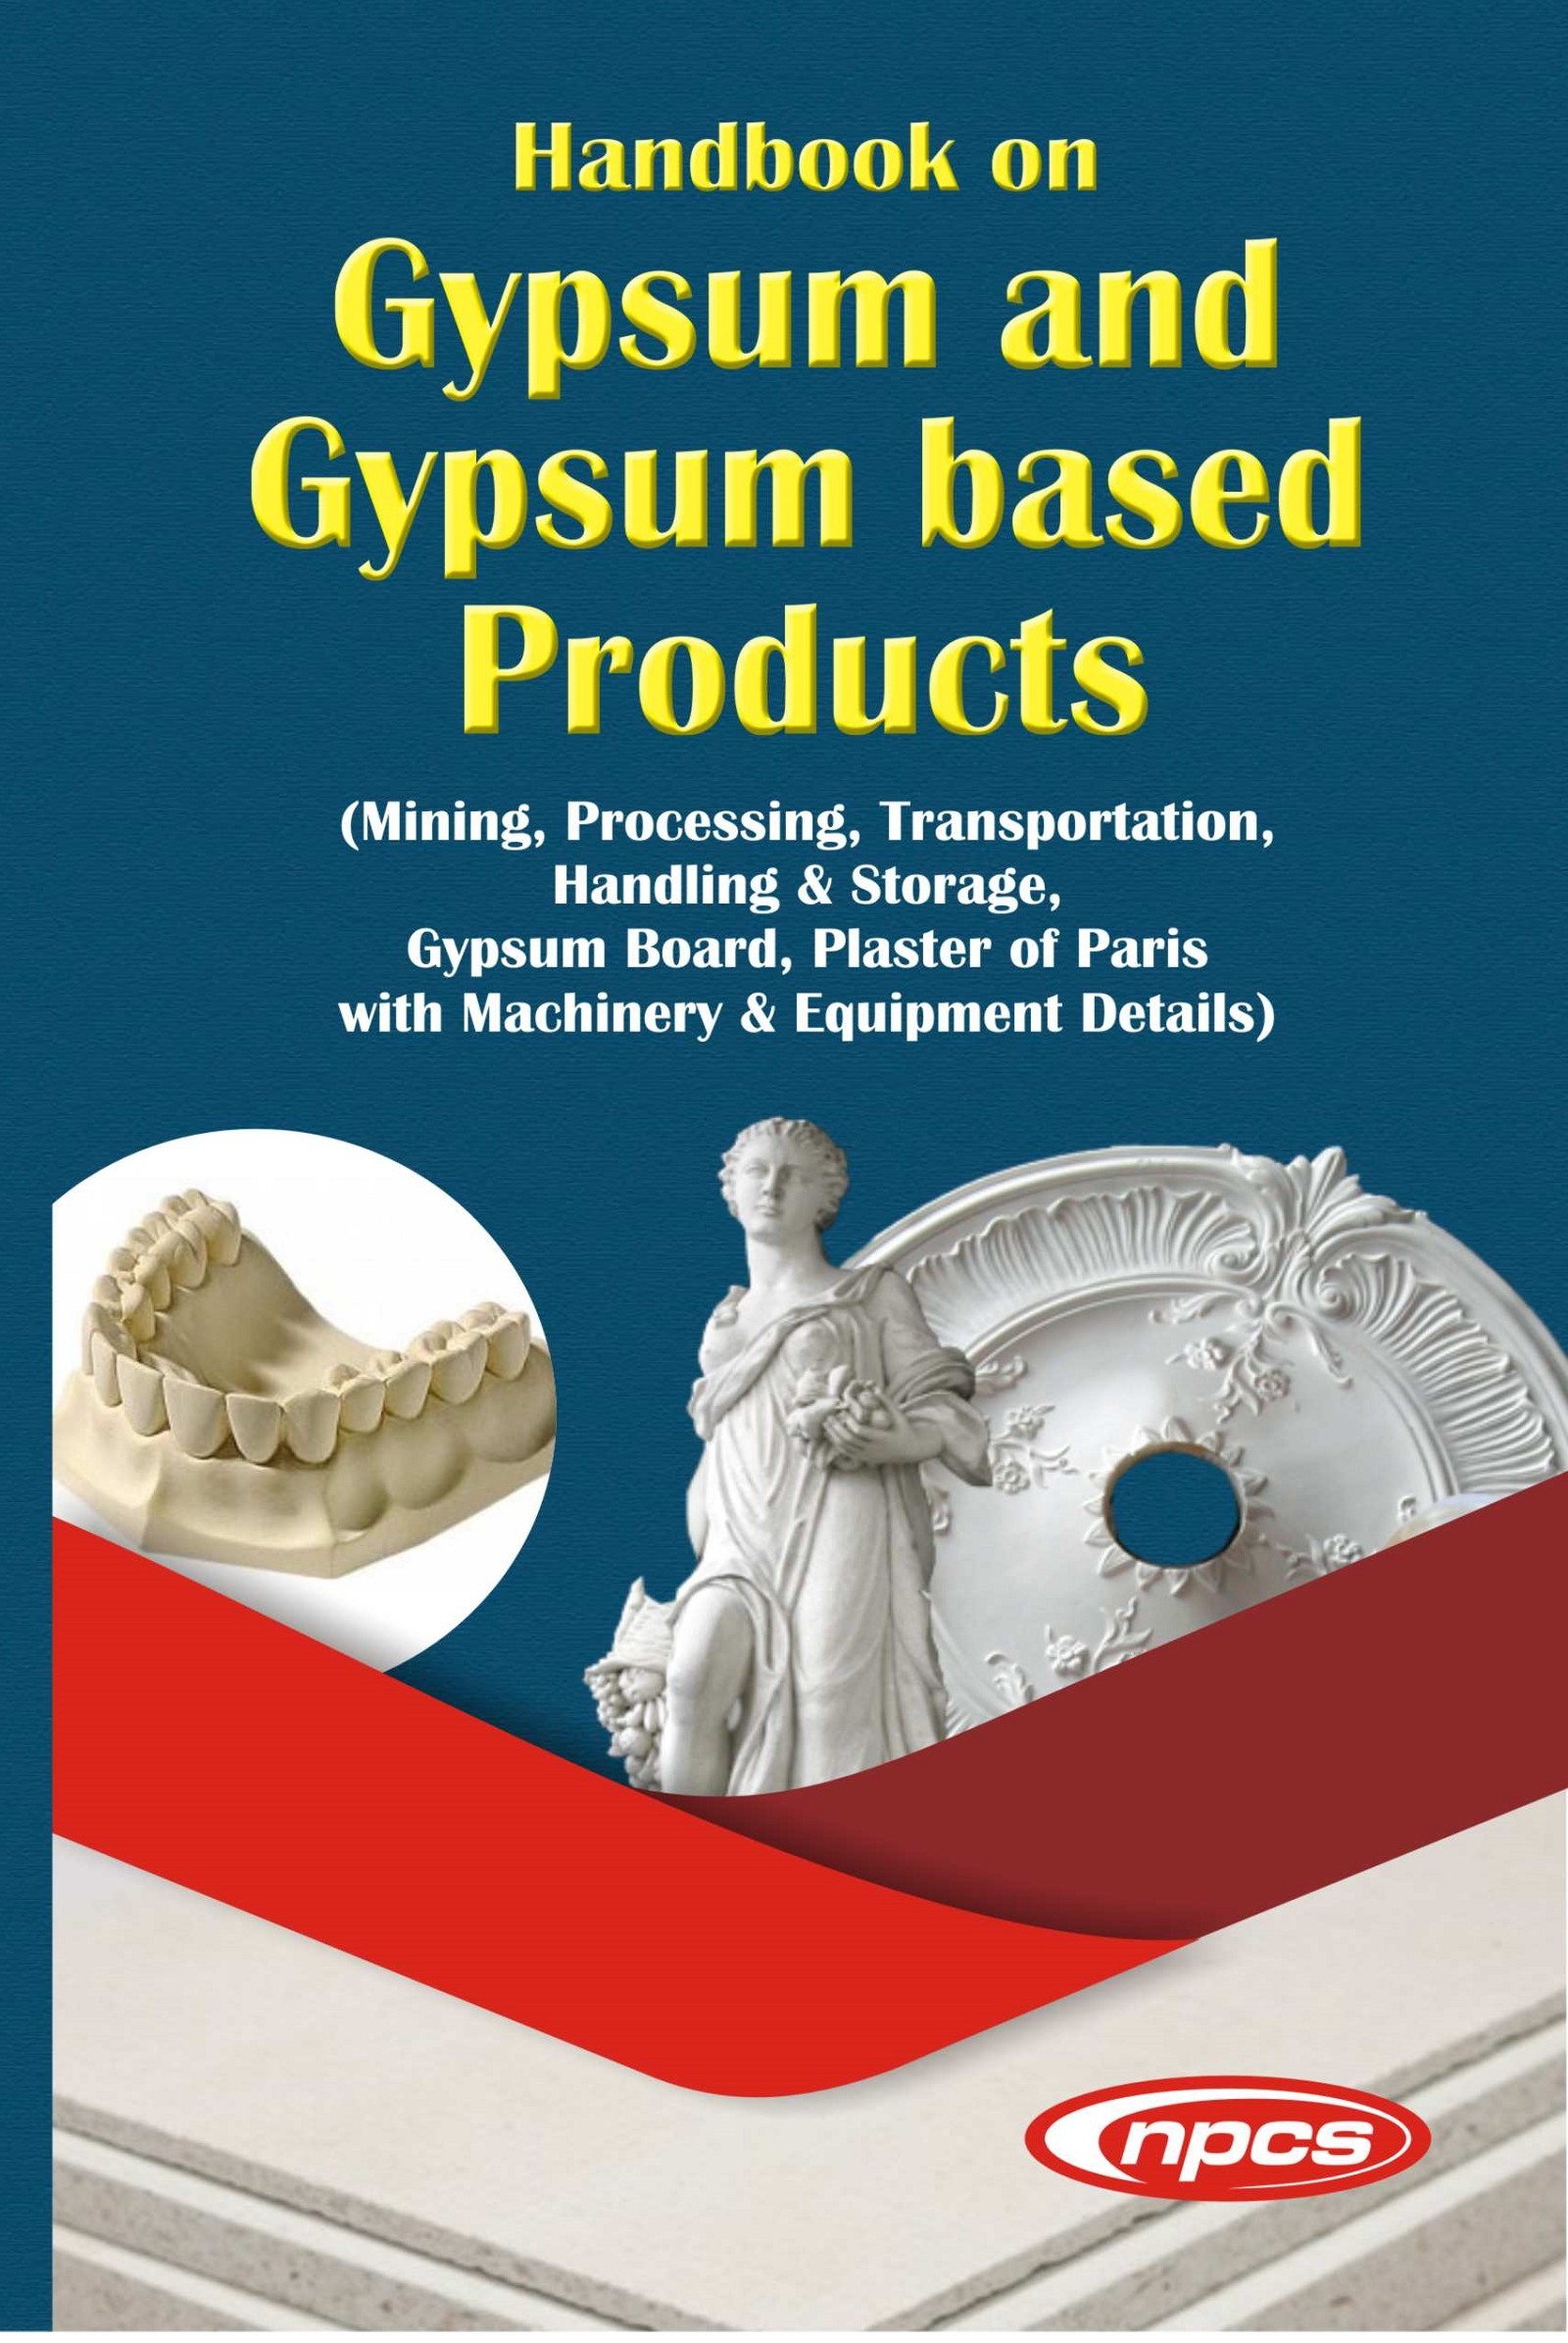 Buy Handbook on Gypsum and Gypsum Based Products